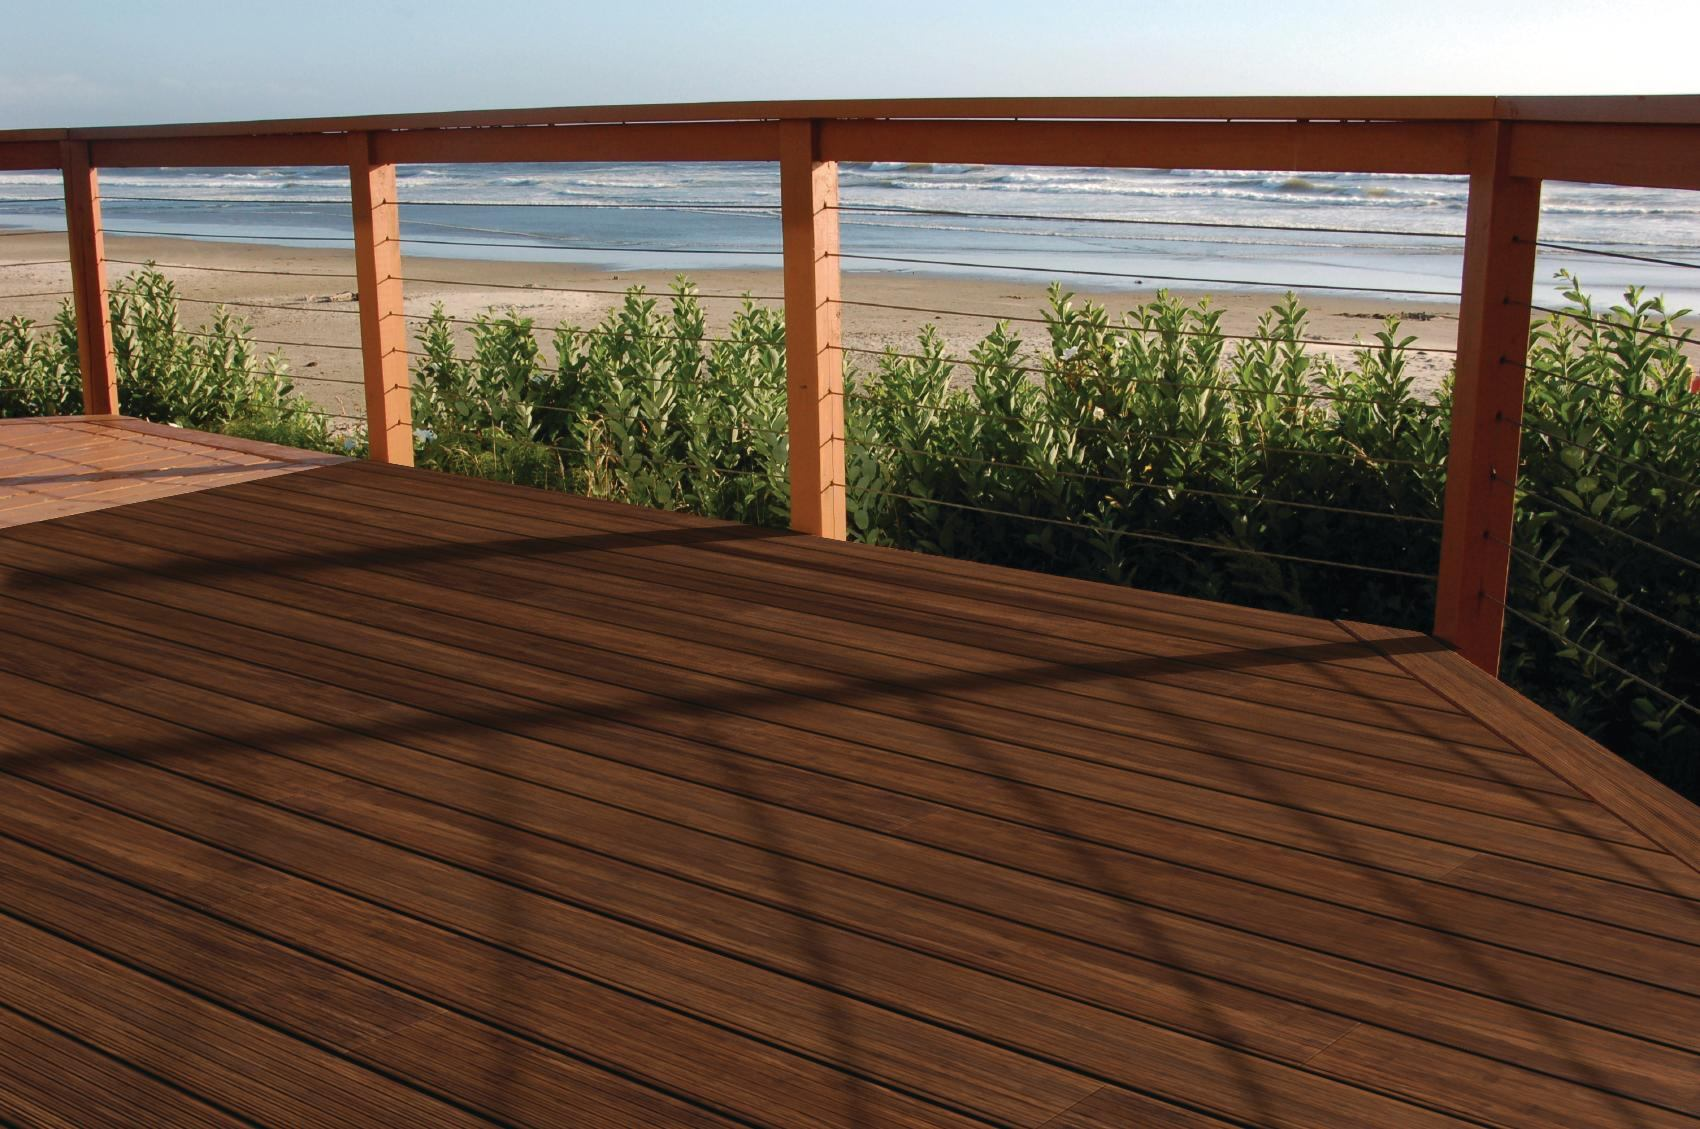 Renewable Bamboo Decking From Cali Bamboo Ecobuilding